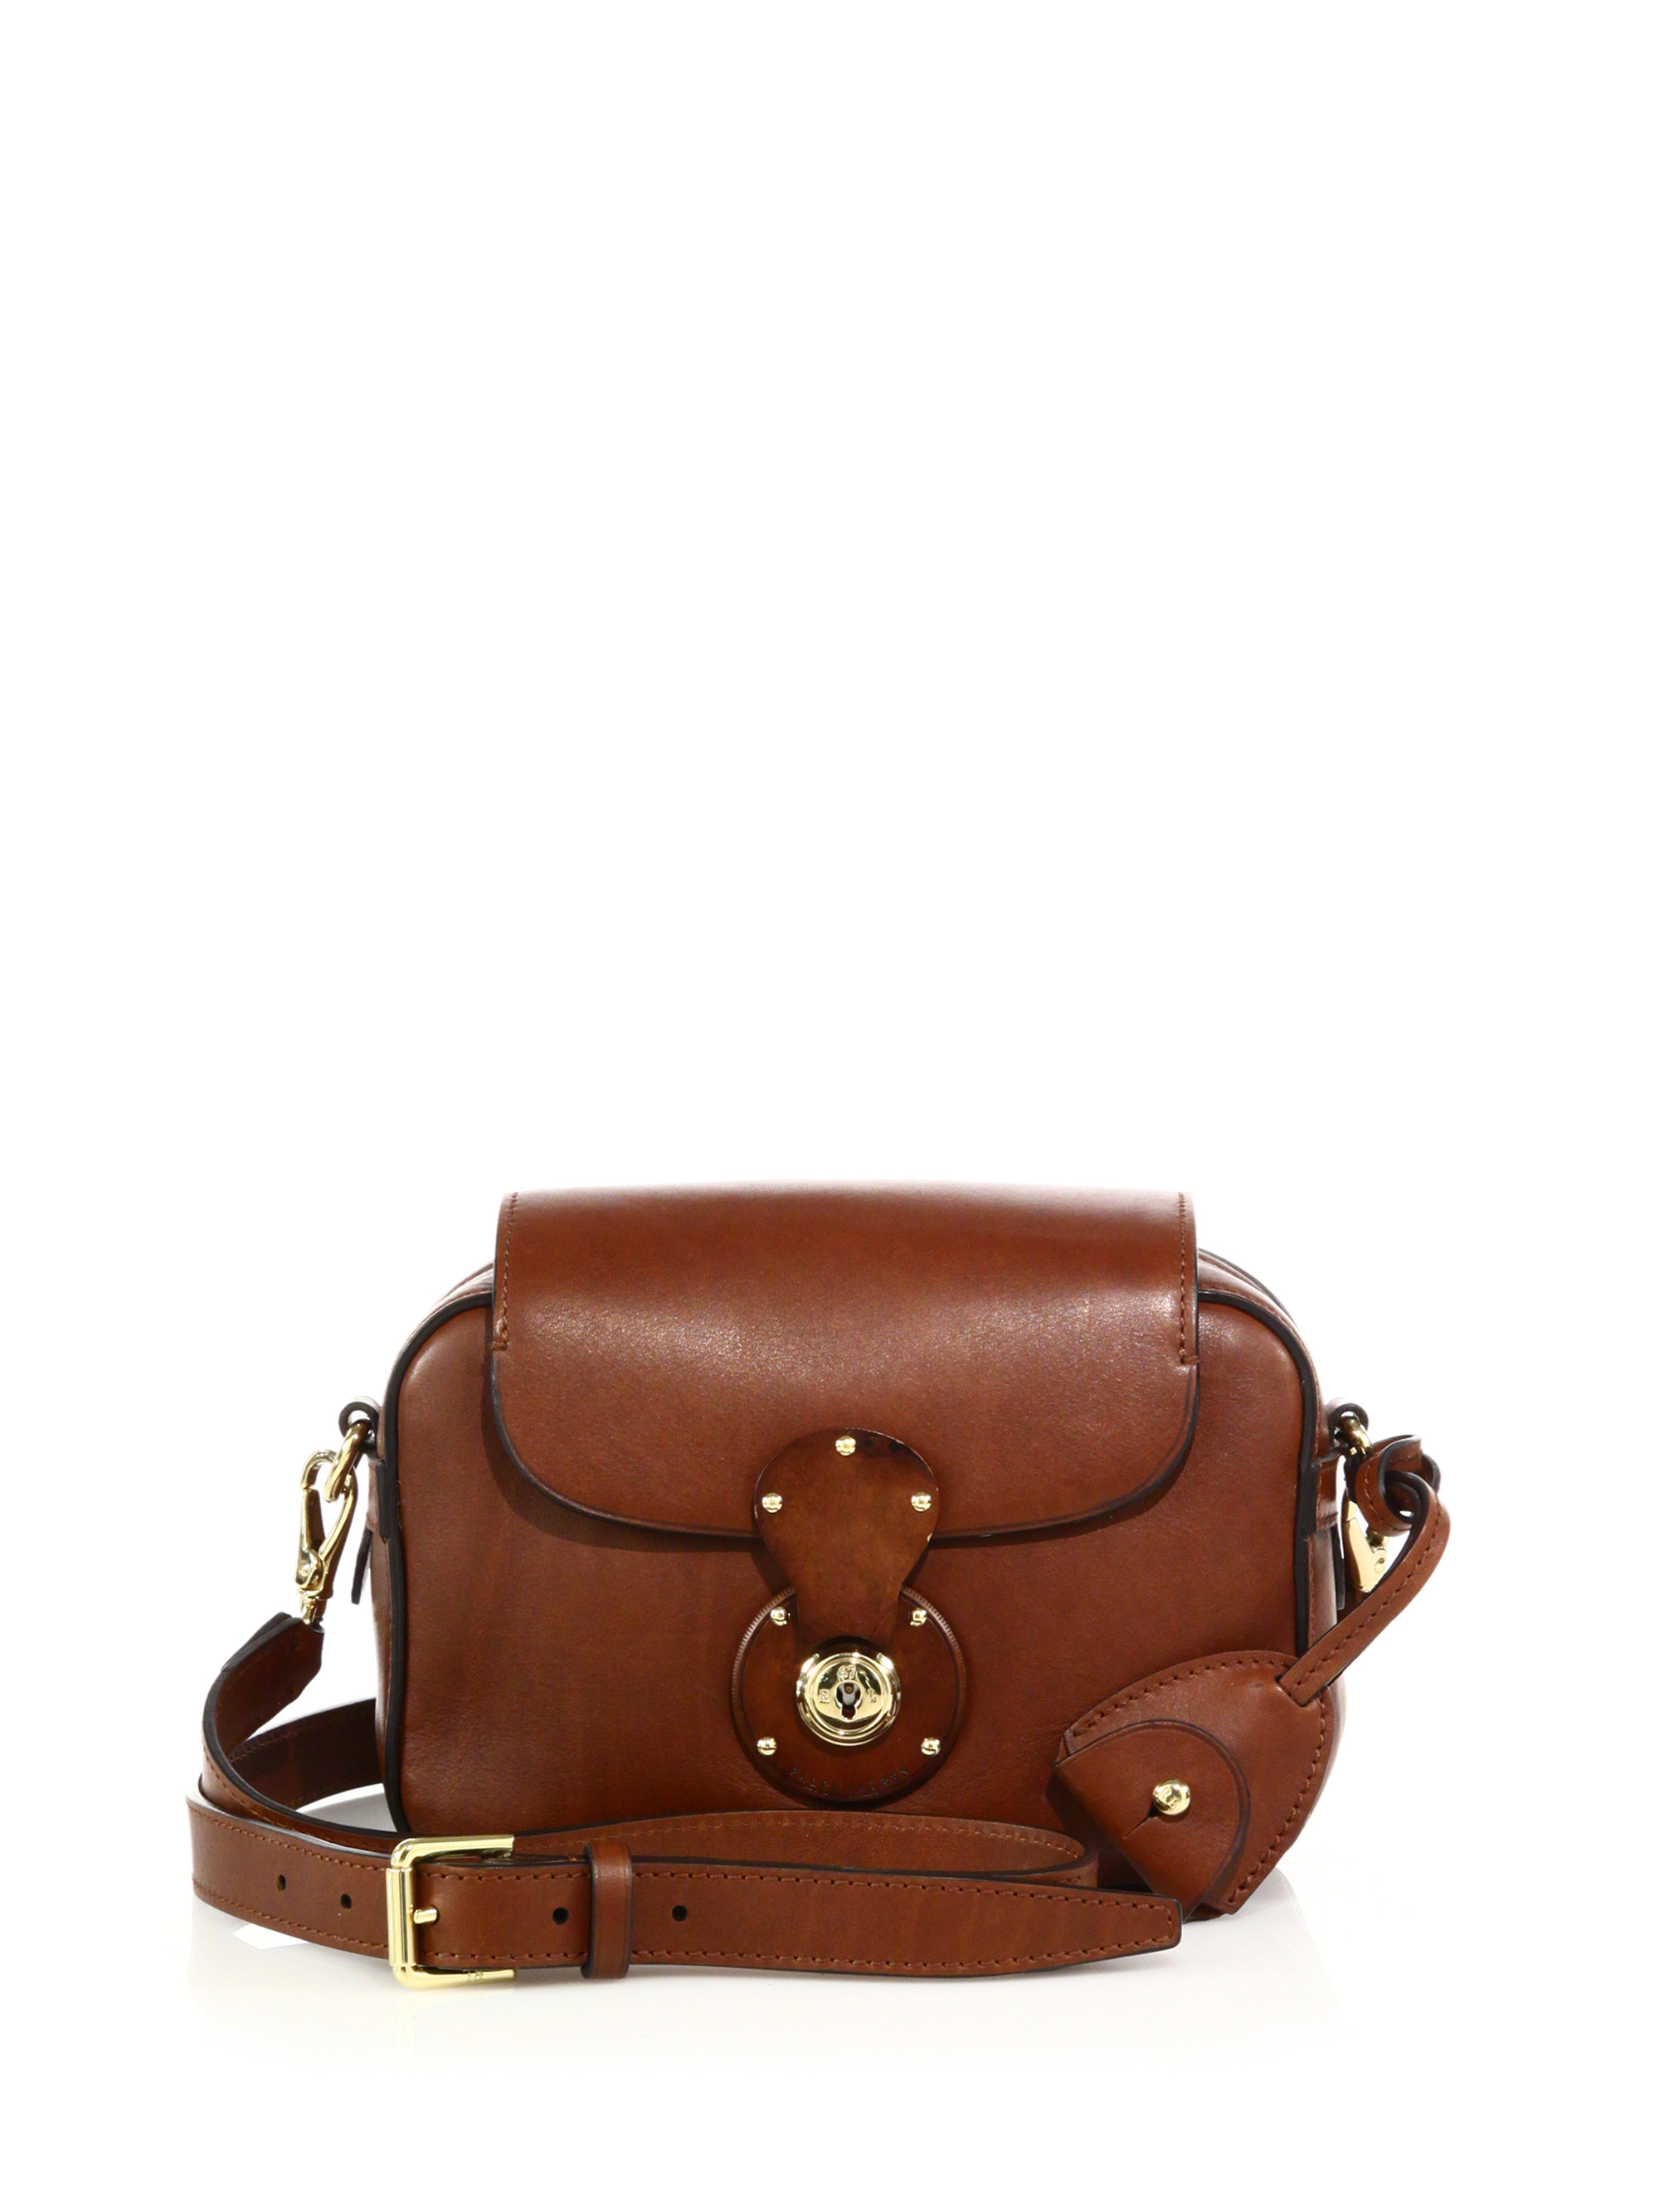 3db073564d Lyst - Ralph Lauren Ricky Small Leather Zip Crossbody Bag in Brown